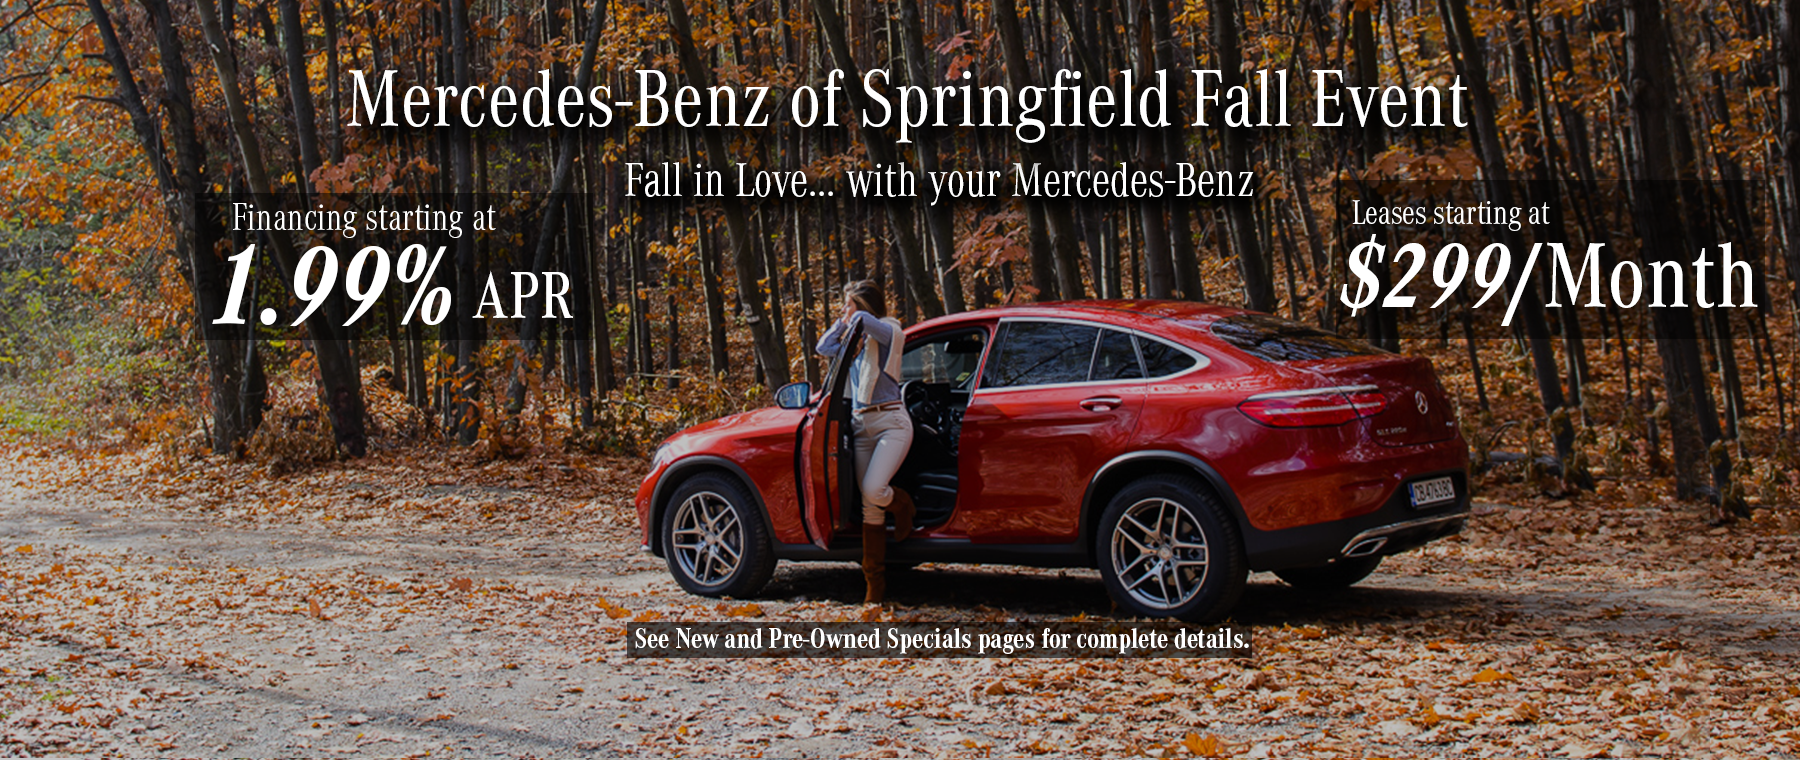 Mercedes-Benz of Springfield - Fall Event Offers - 1.99% APR and $299 Lease